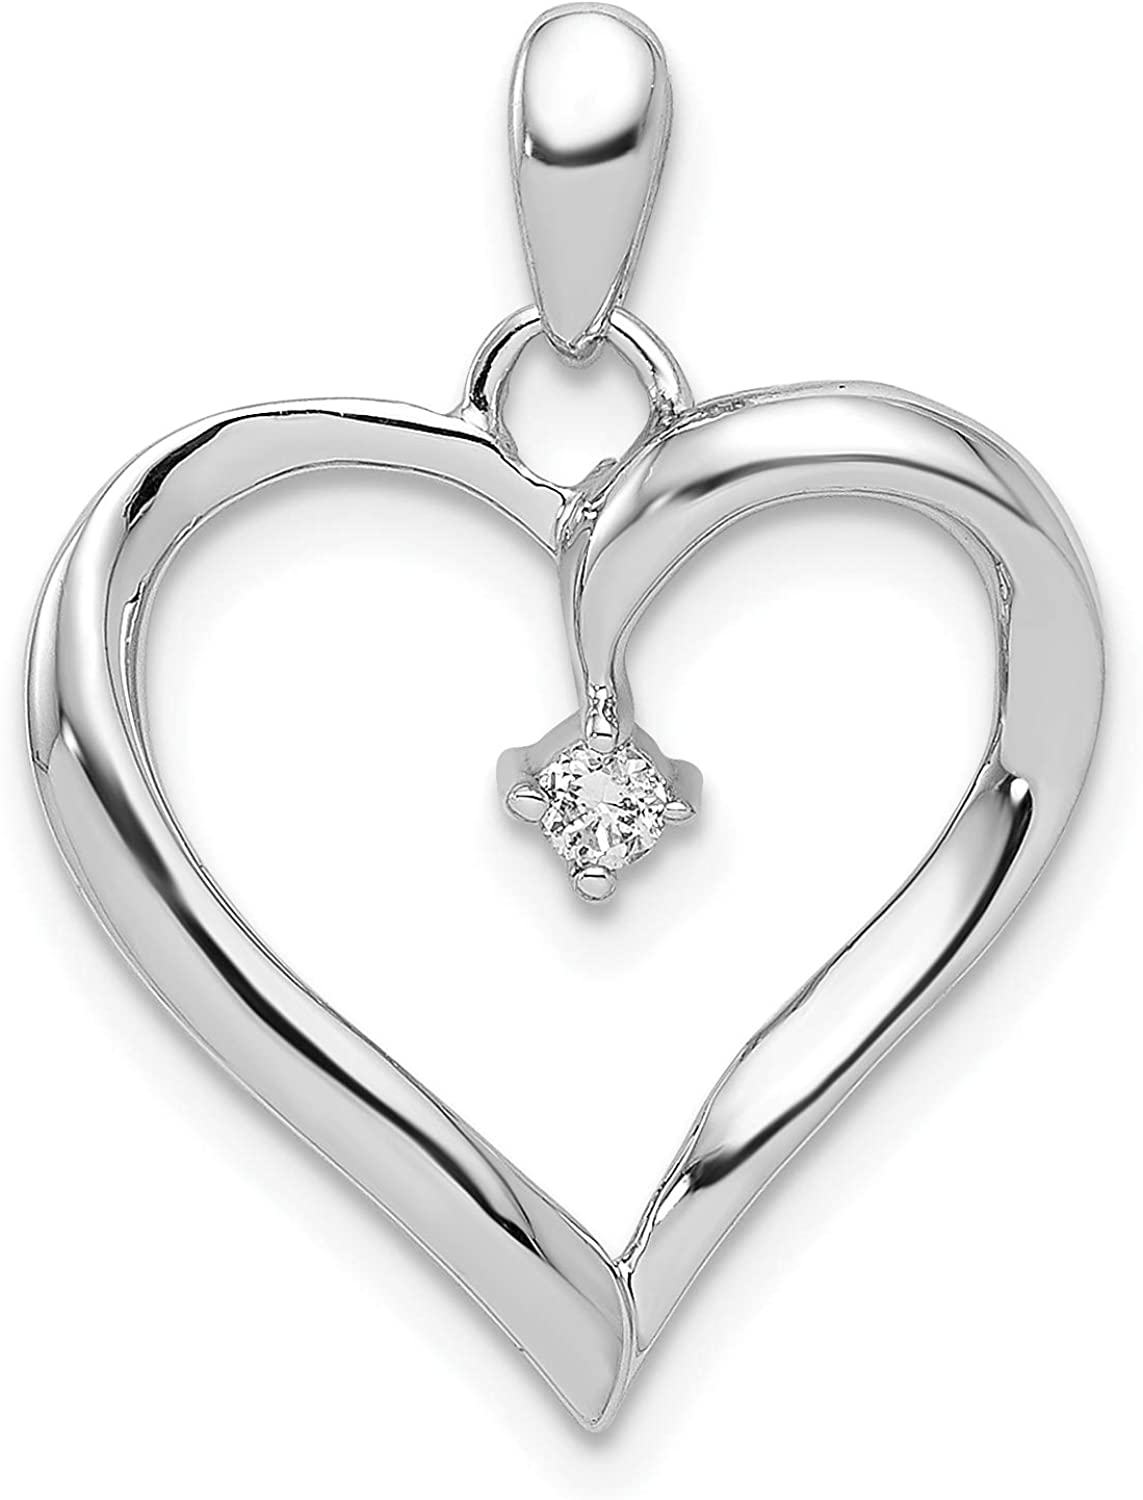 0.05 cttw, I1-I3 Clarity, I-J Color Diamond Heart Pendant in 925 Sterling Silver 22x17mm